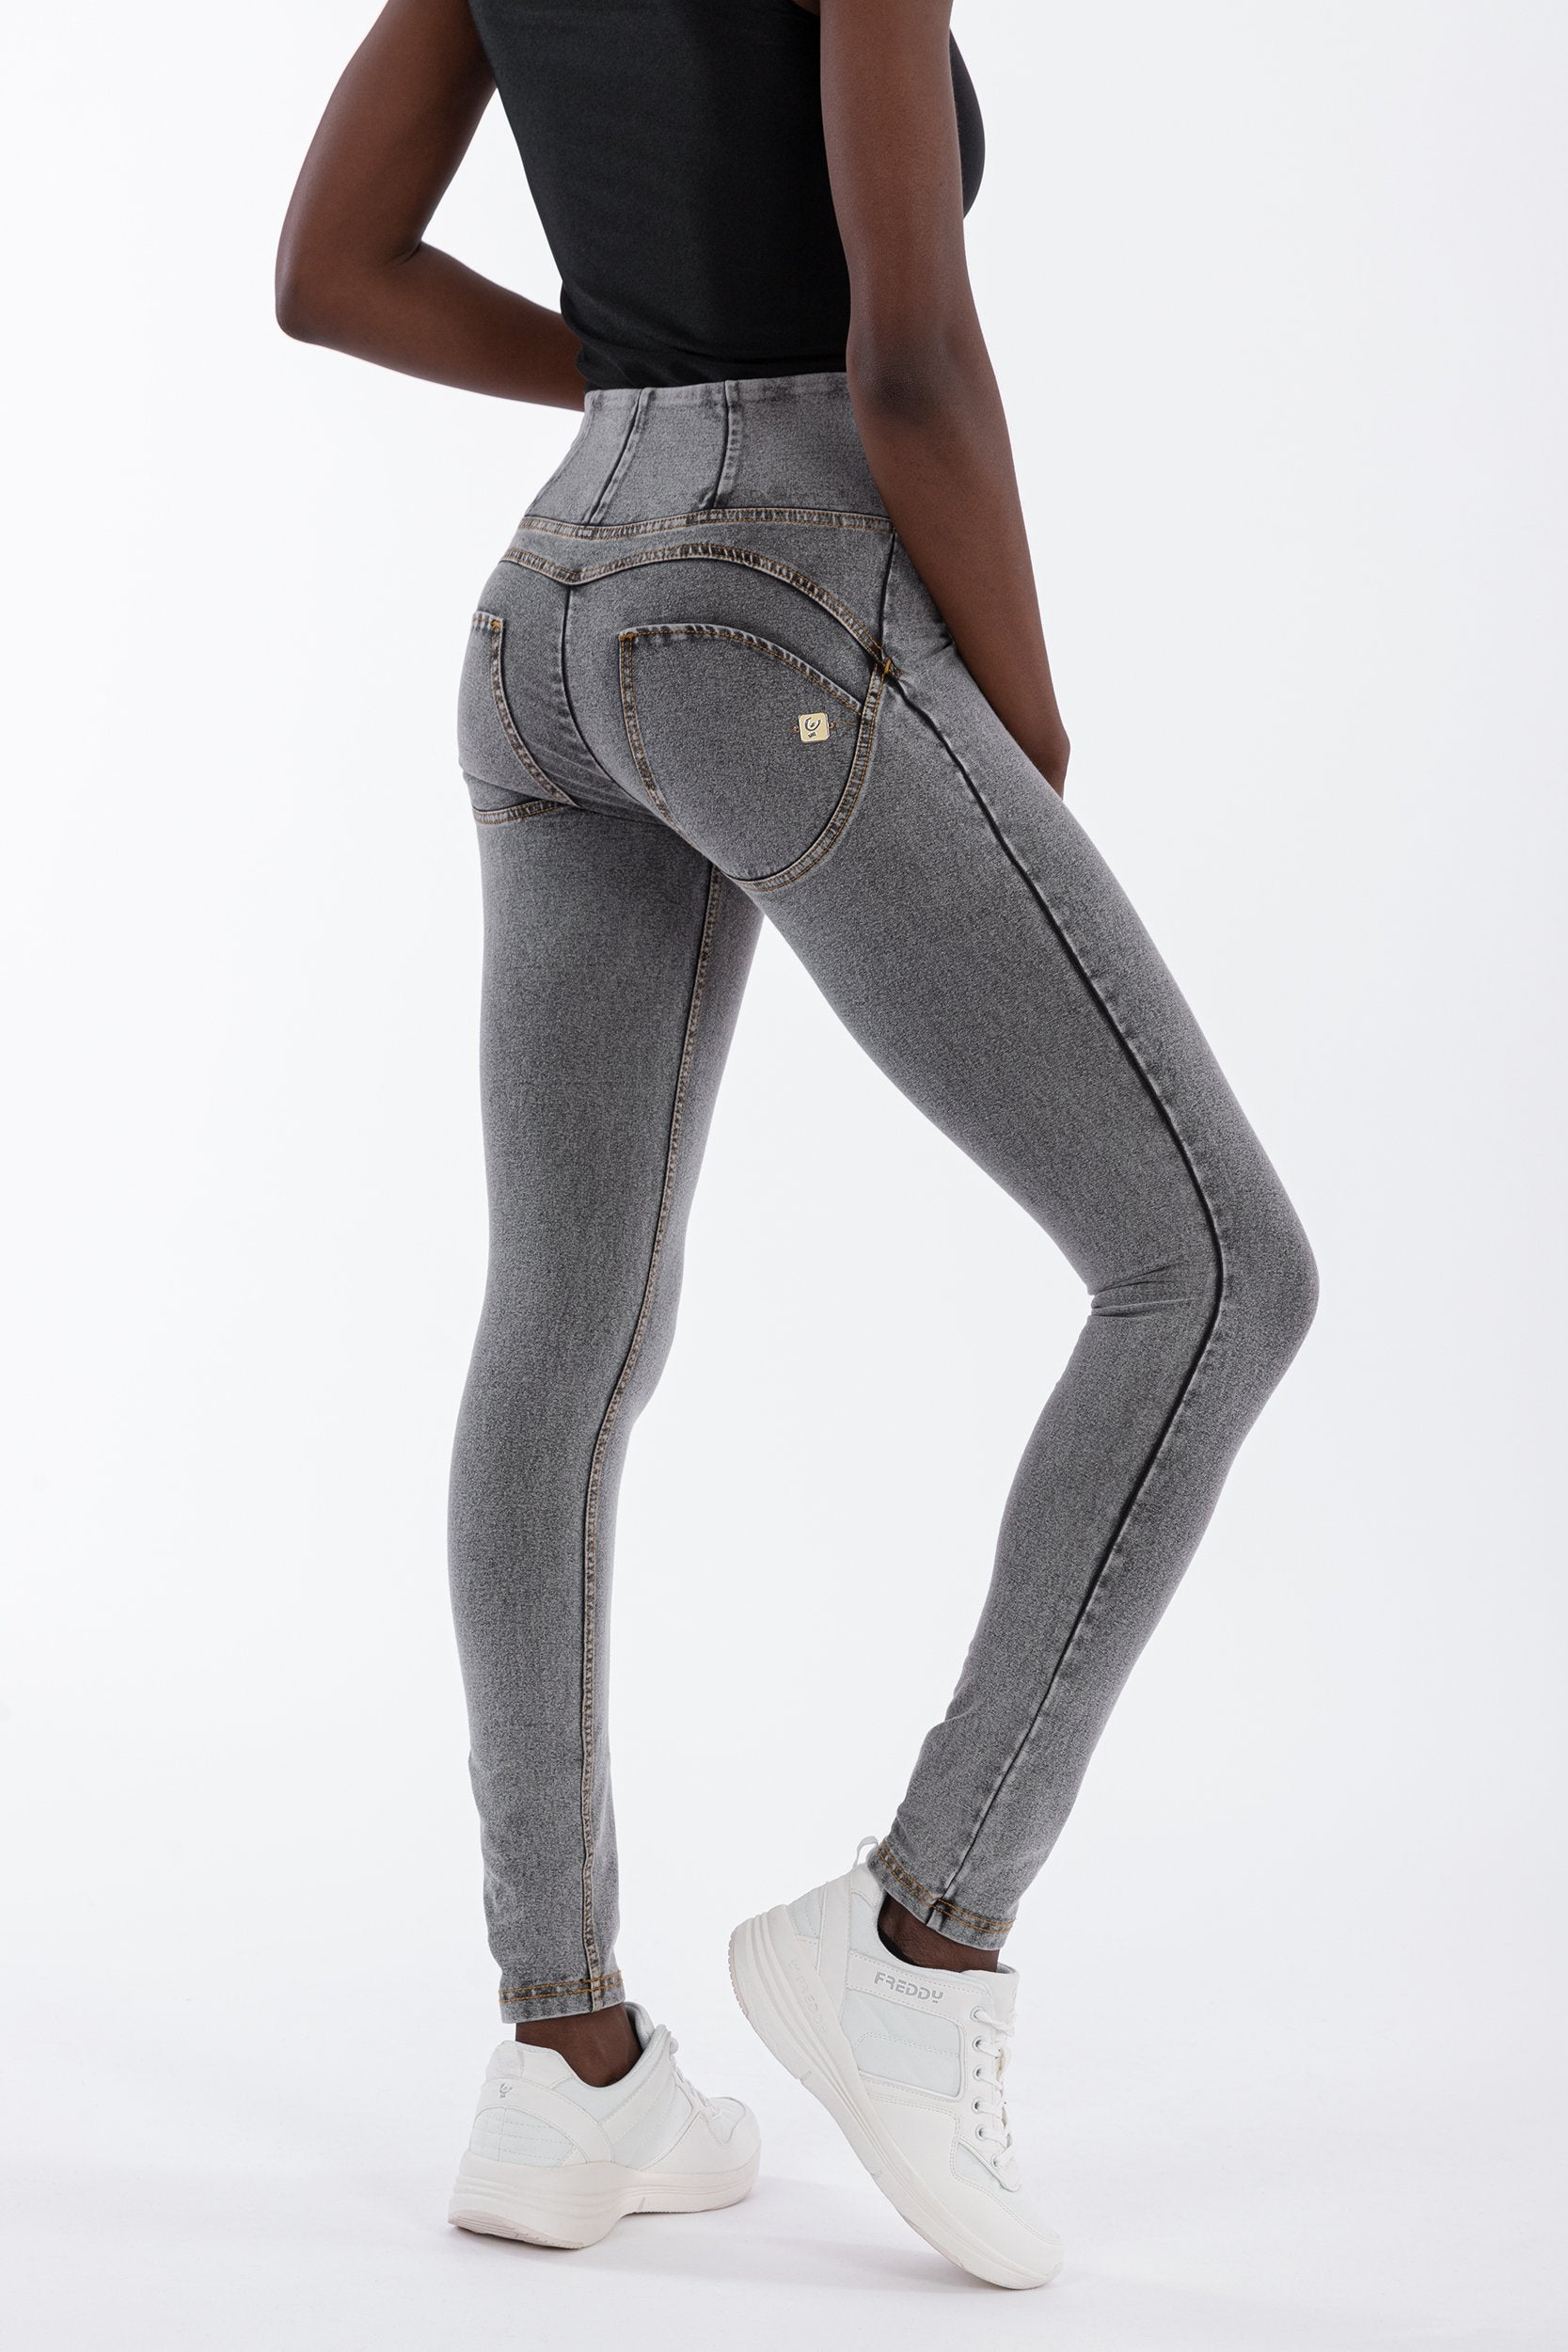 ANKLE GREY DENIM HIGH RISE SELF TONE ZIP